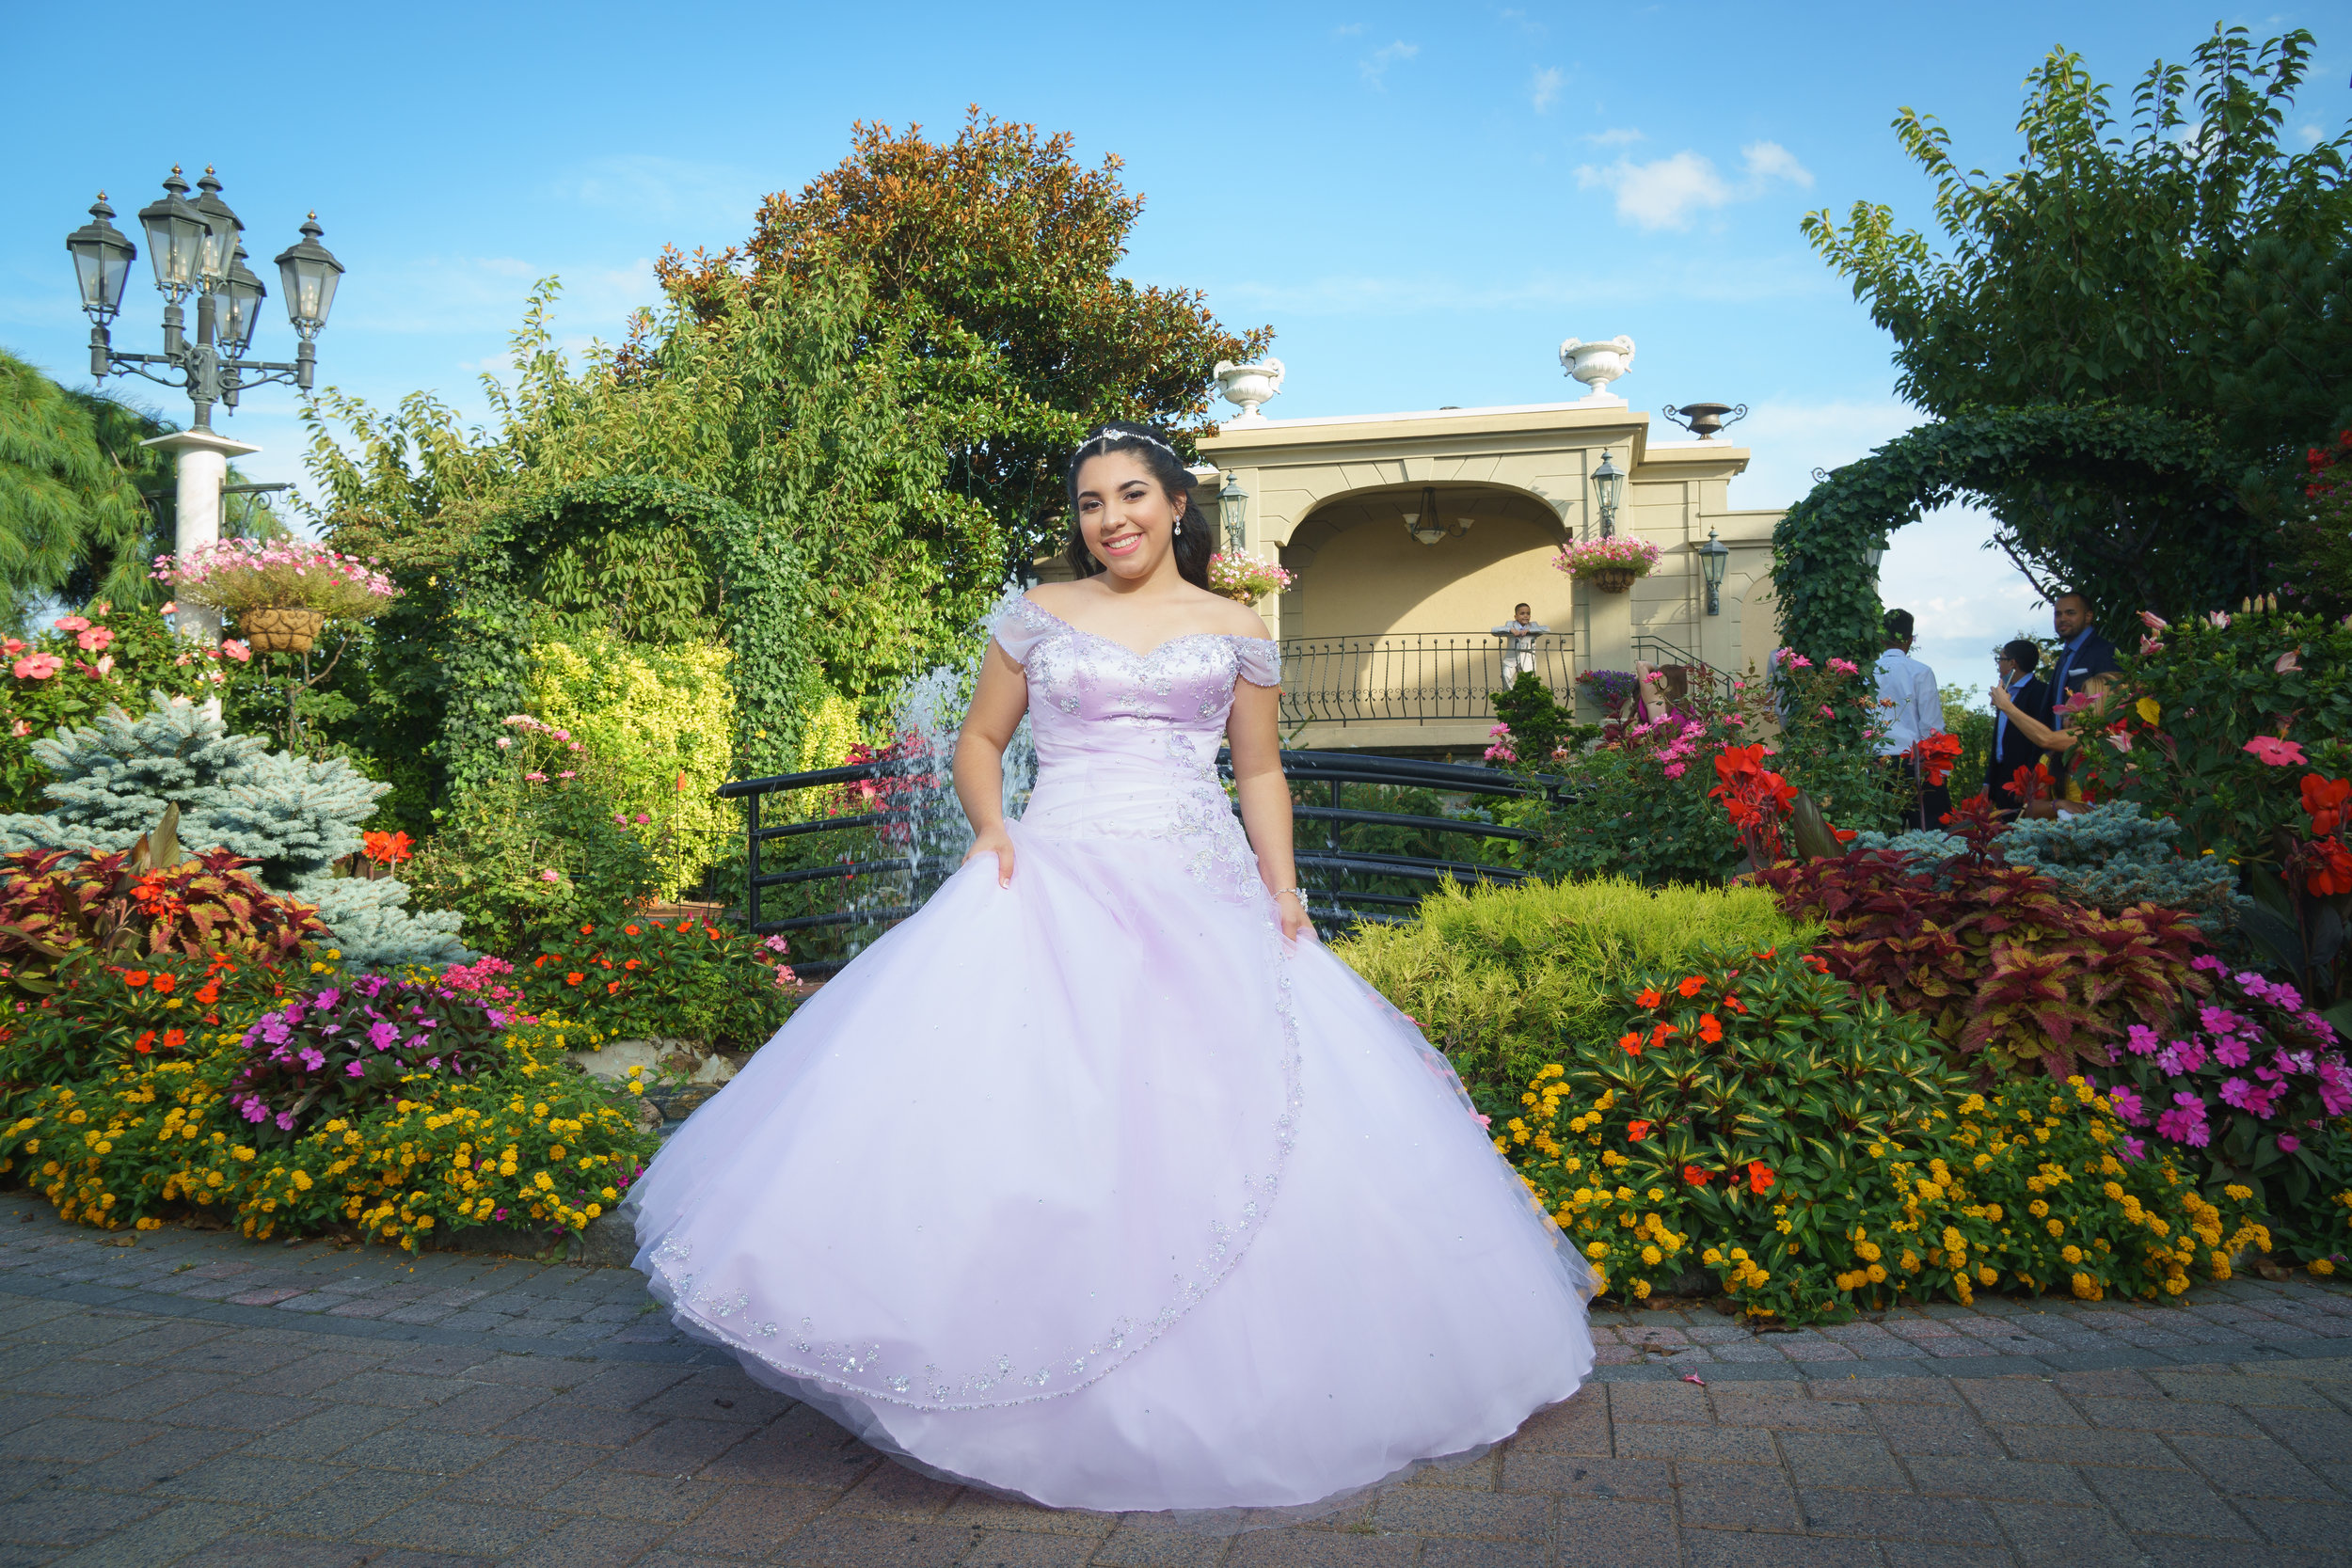 Sweet16 Photography